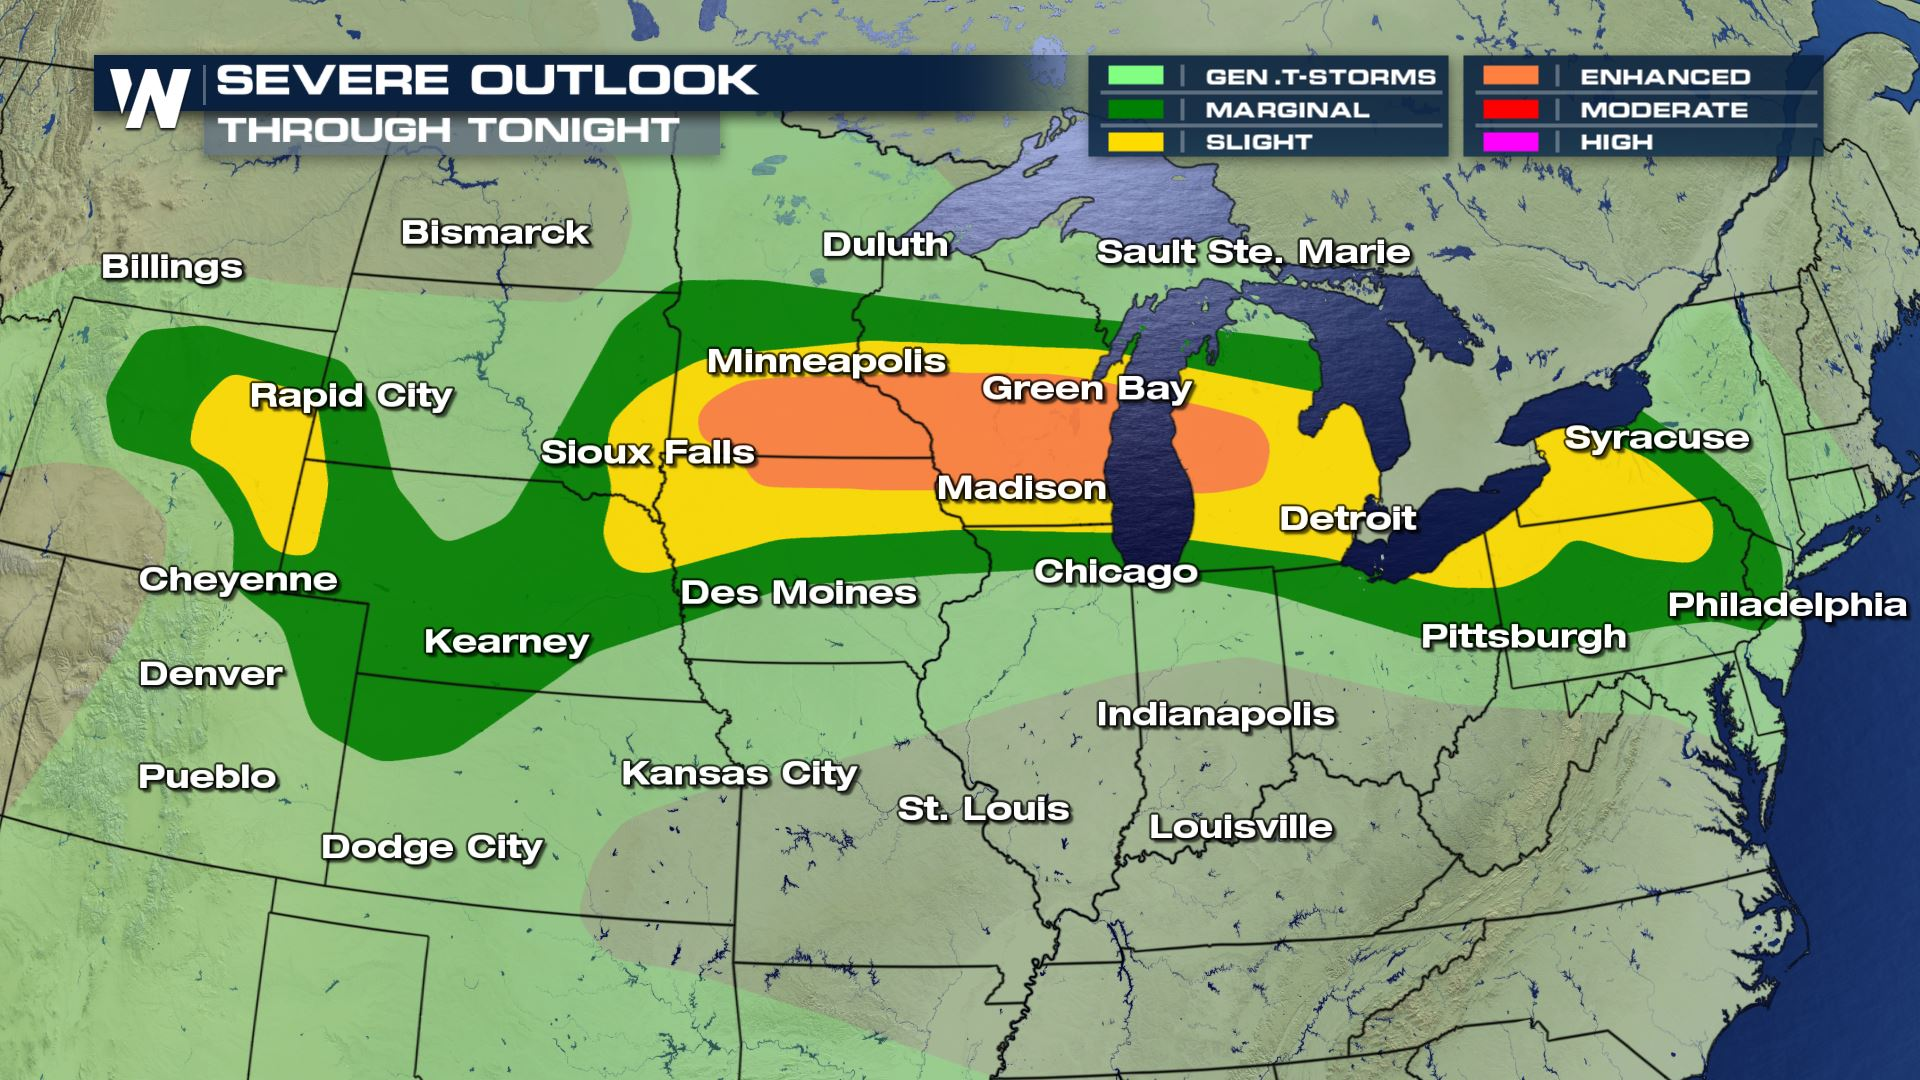 Severe Storm Threat Continues Across Plains and Midwest Tuesday